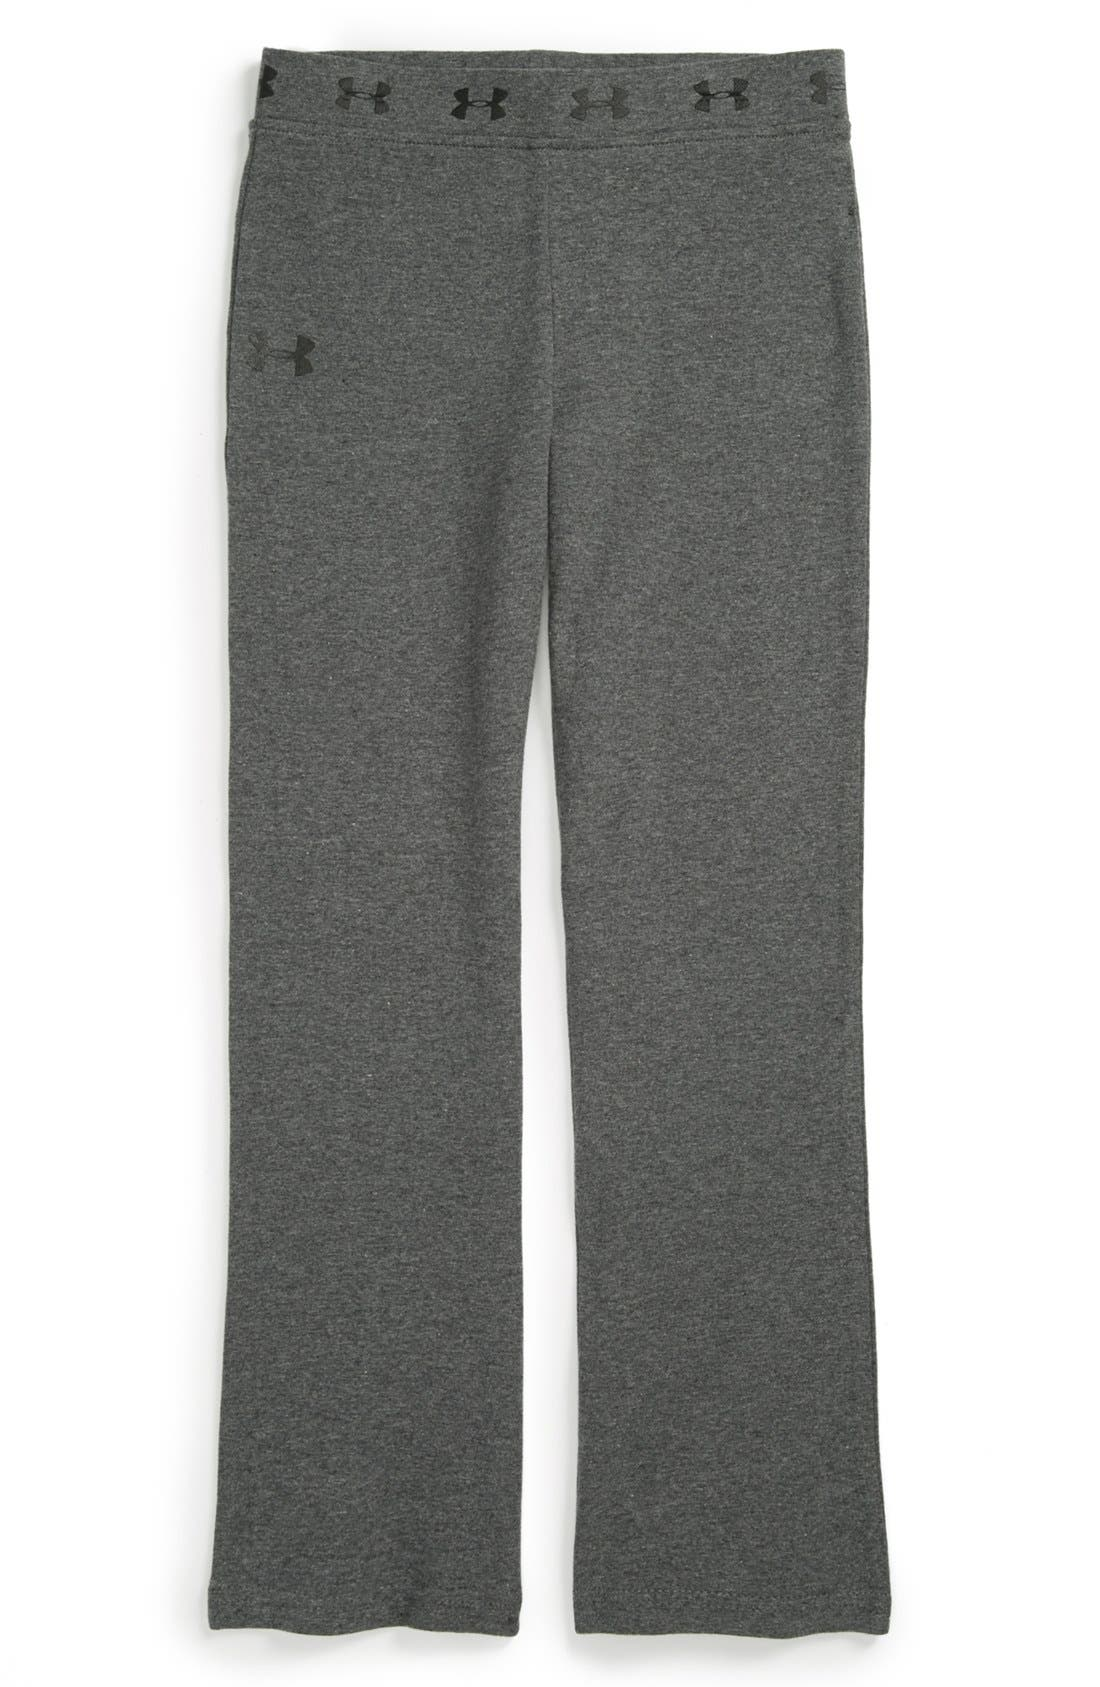 Alternate Image 1 Selected - Under Armour 'Logo' Yoga Pants (Little Girls)